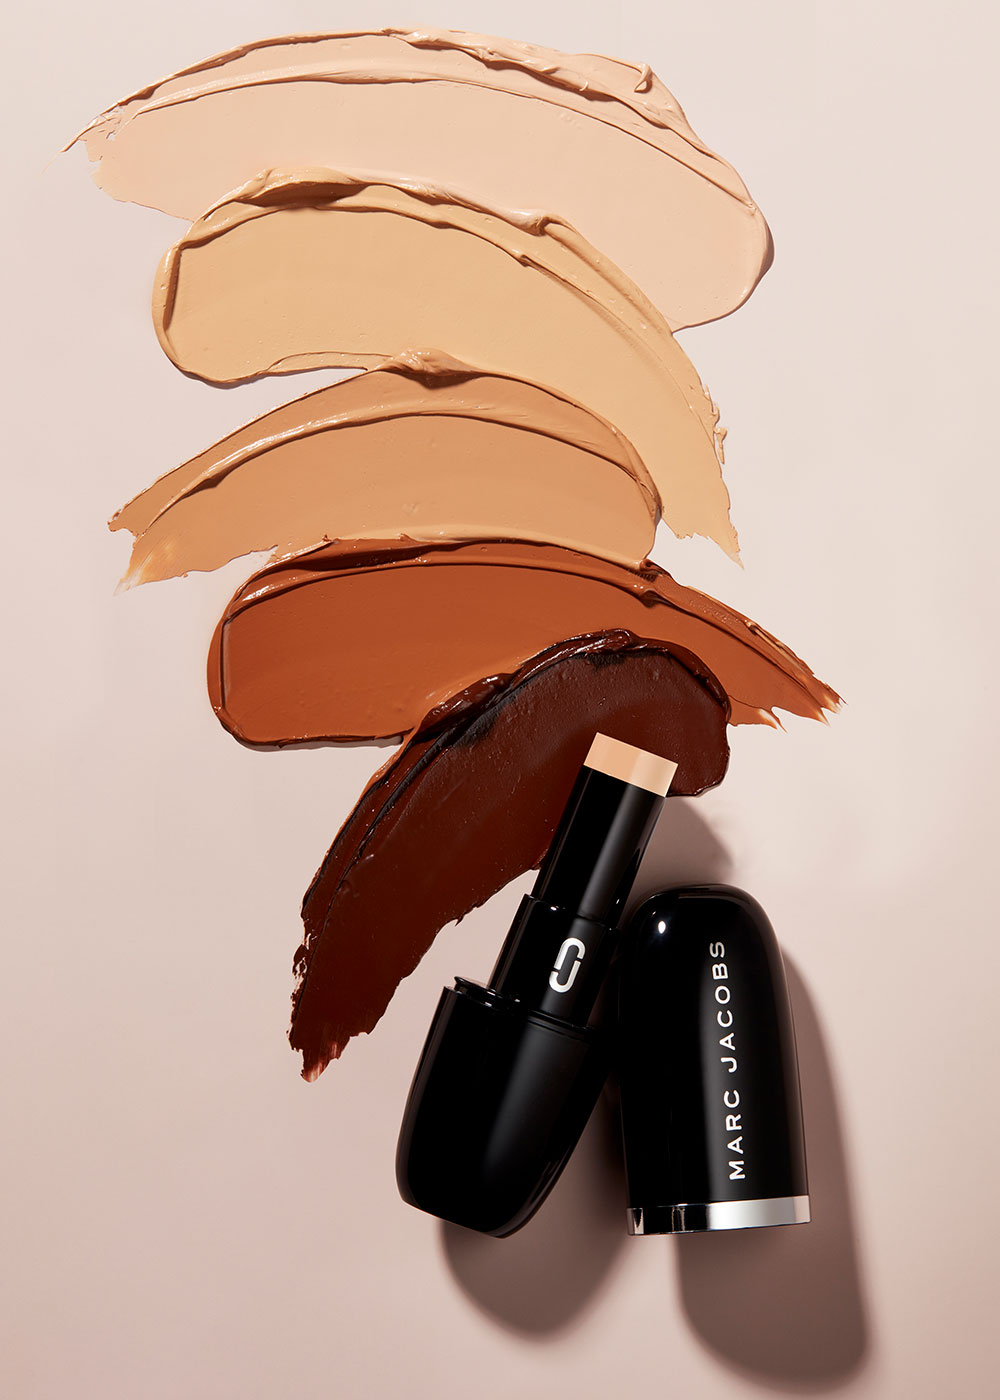 LONG-LASTING FOUNDATION & CONCEALER